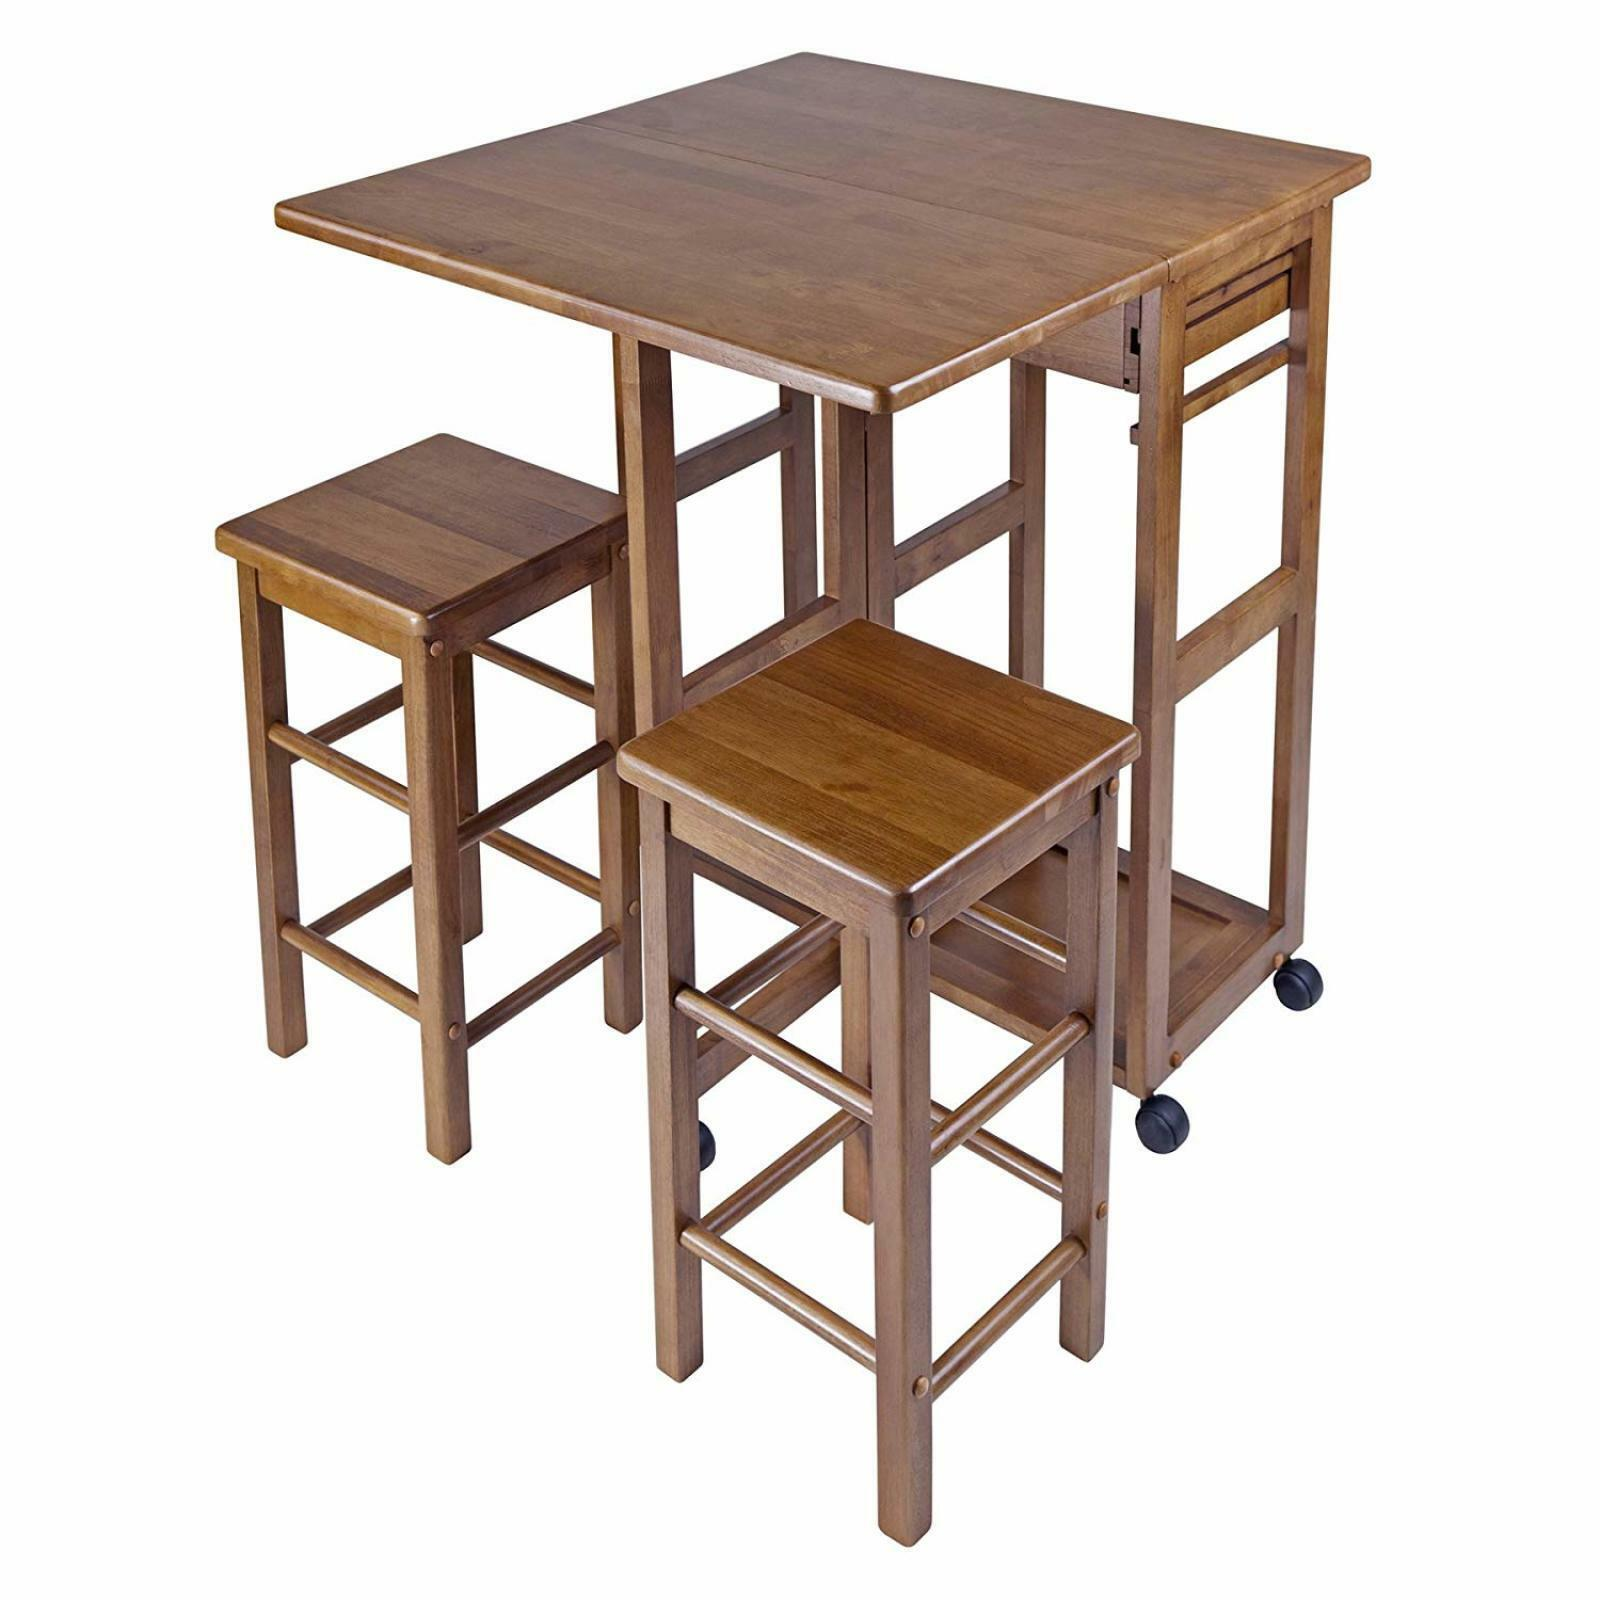 Small Space Dinning Set W Wooden Stool Chairs Wheeled Folding